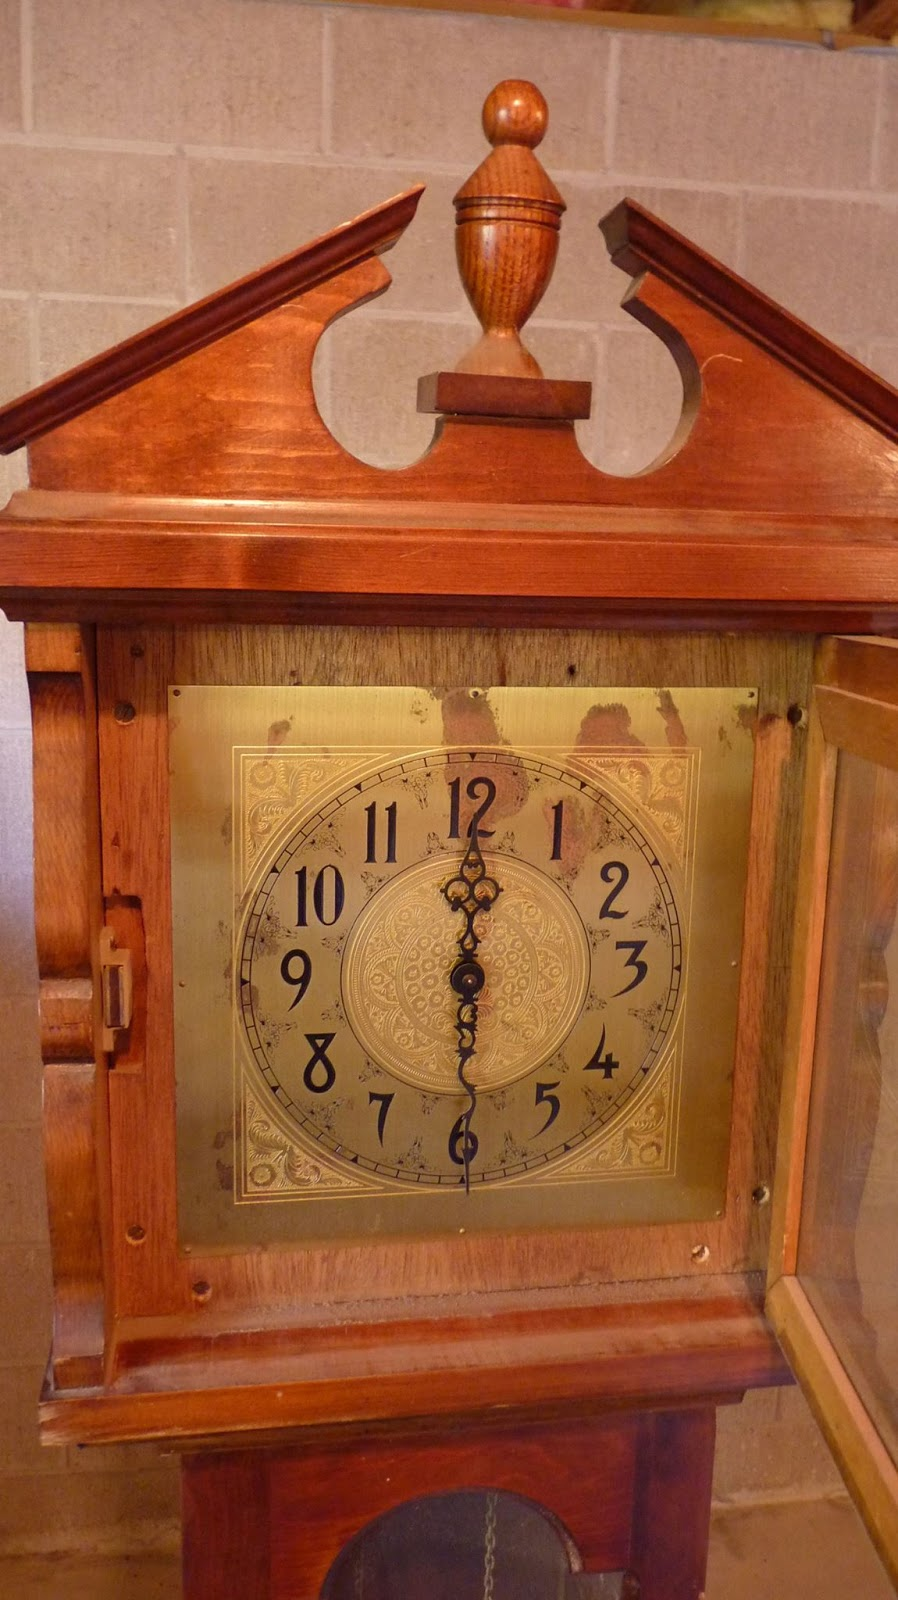 Any Clock Shop Owner Will Tell You, The Vast Majority Of Commissioned Work  Comes From People Who Own A Family Heirloom. A Clock That Has A Long  History, ...